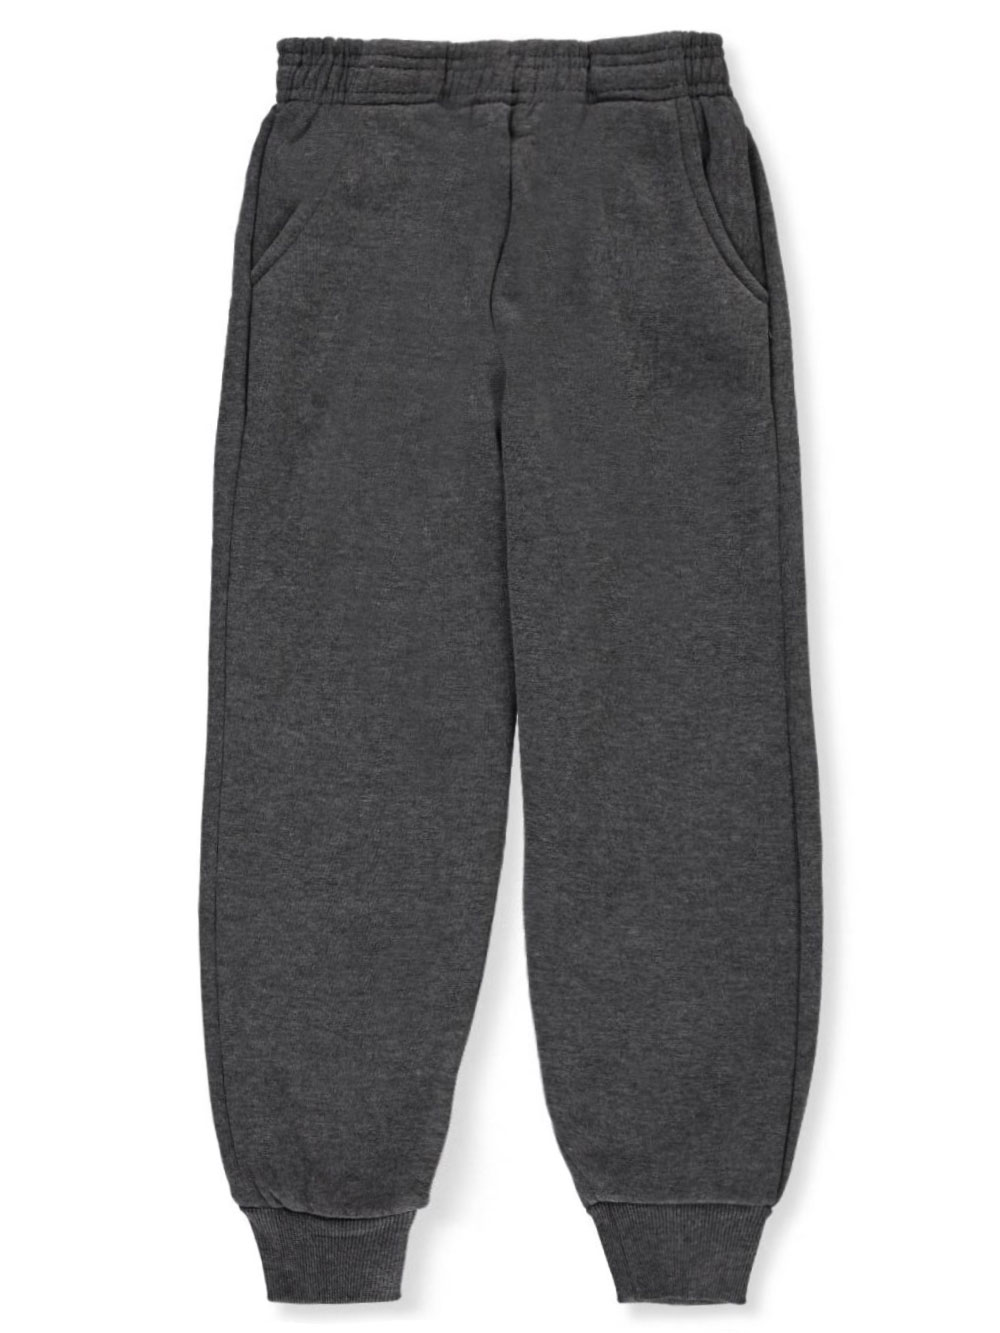 Size 4t Sweatpants for Boys